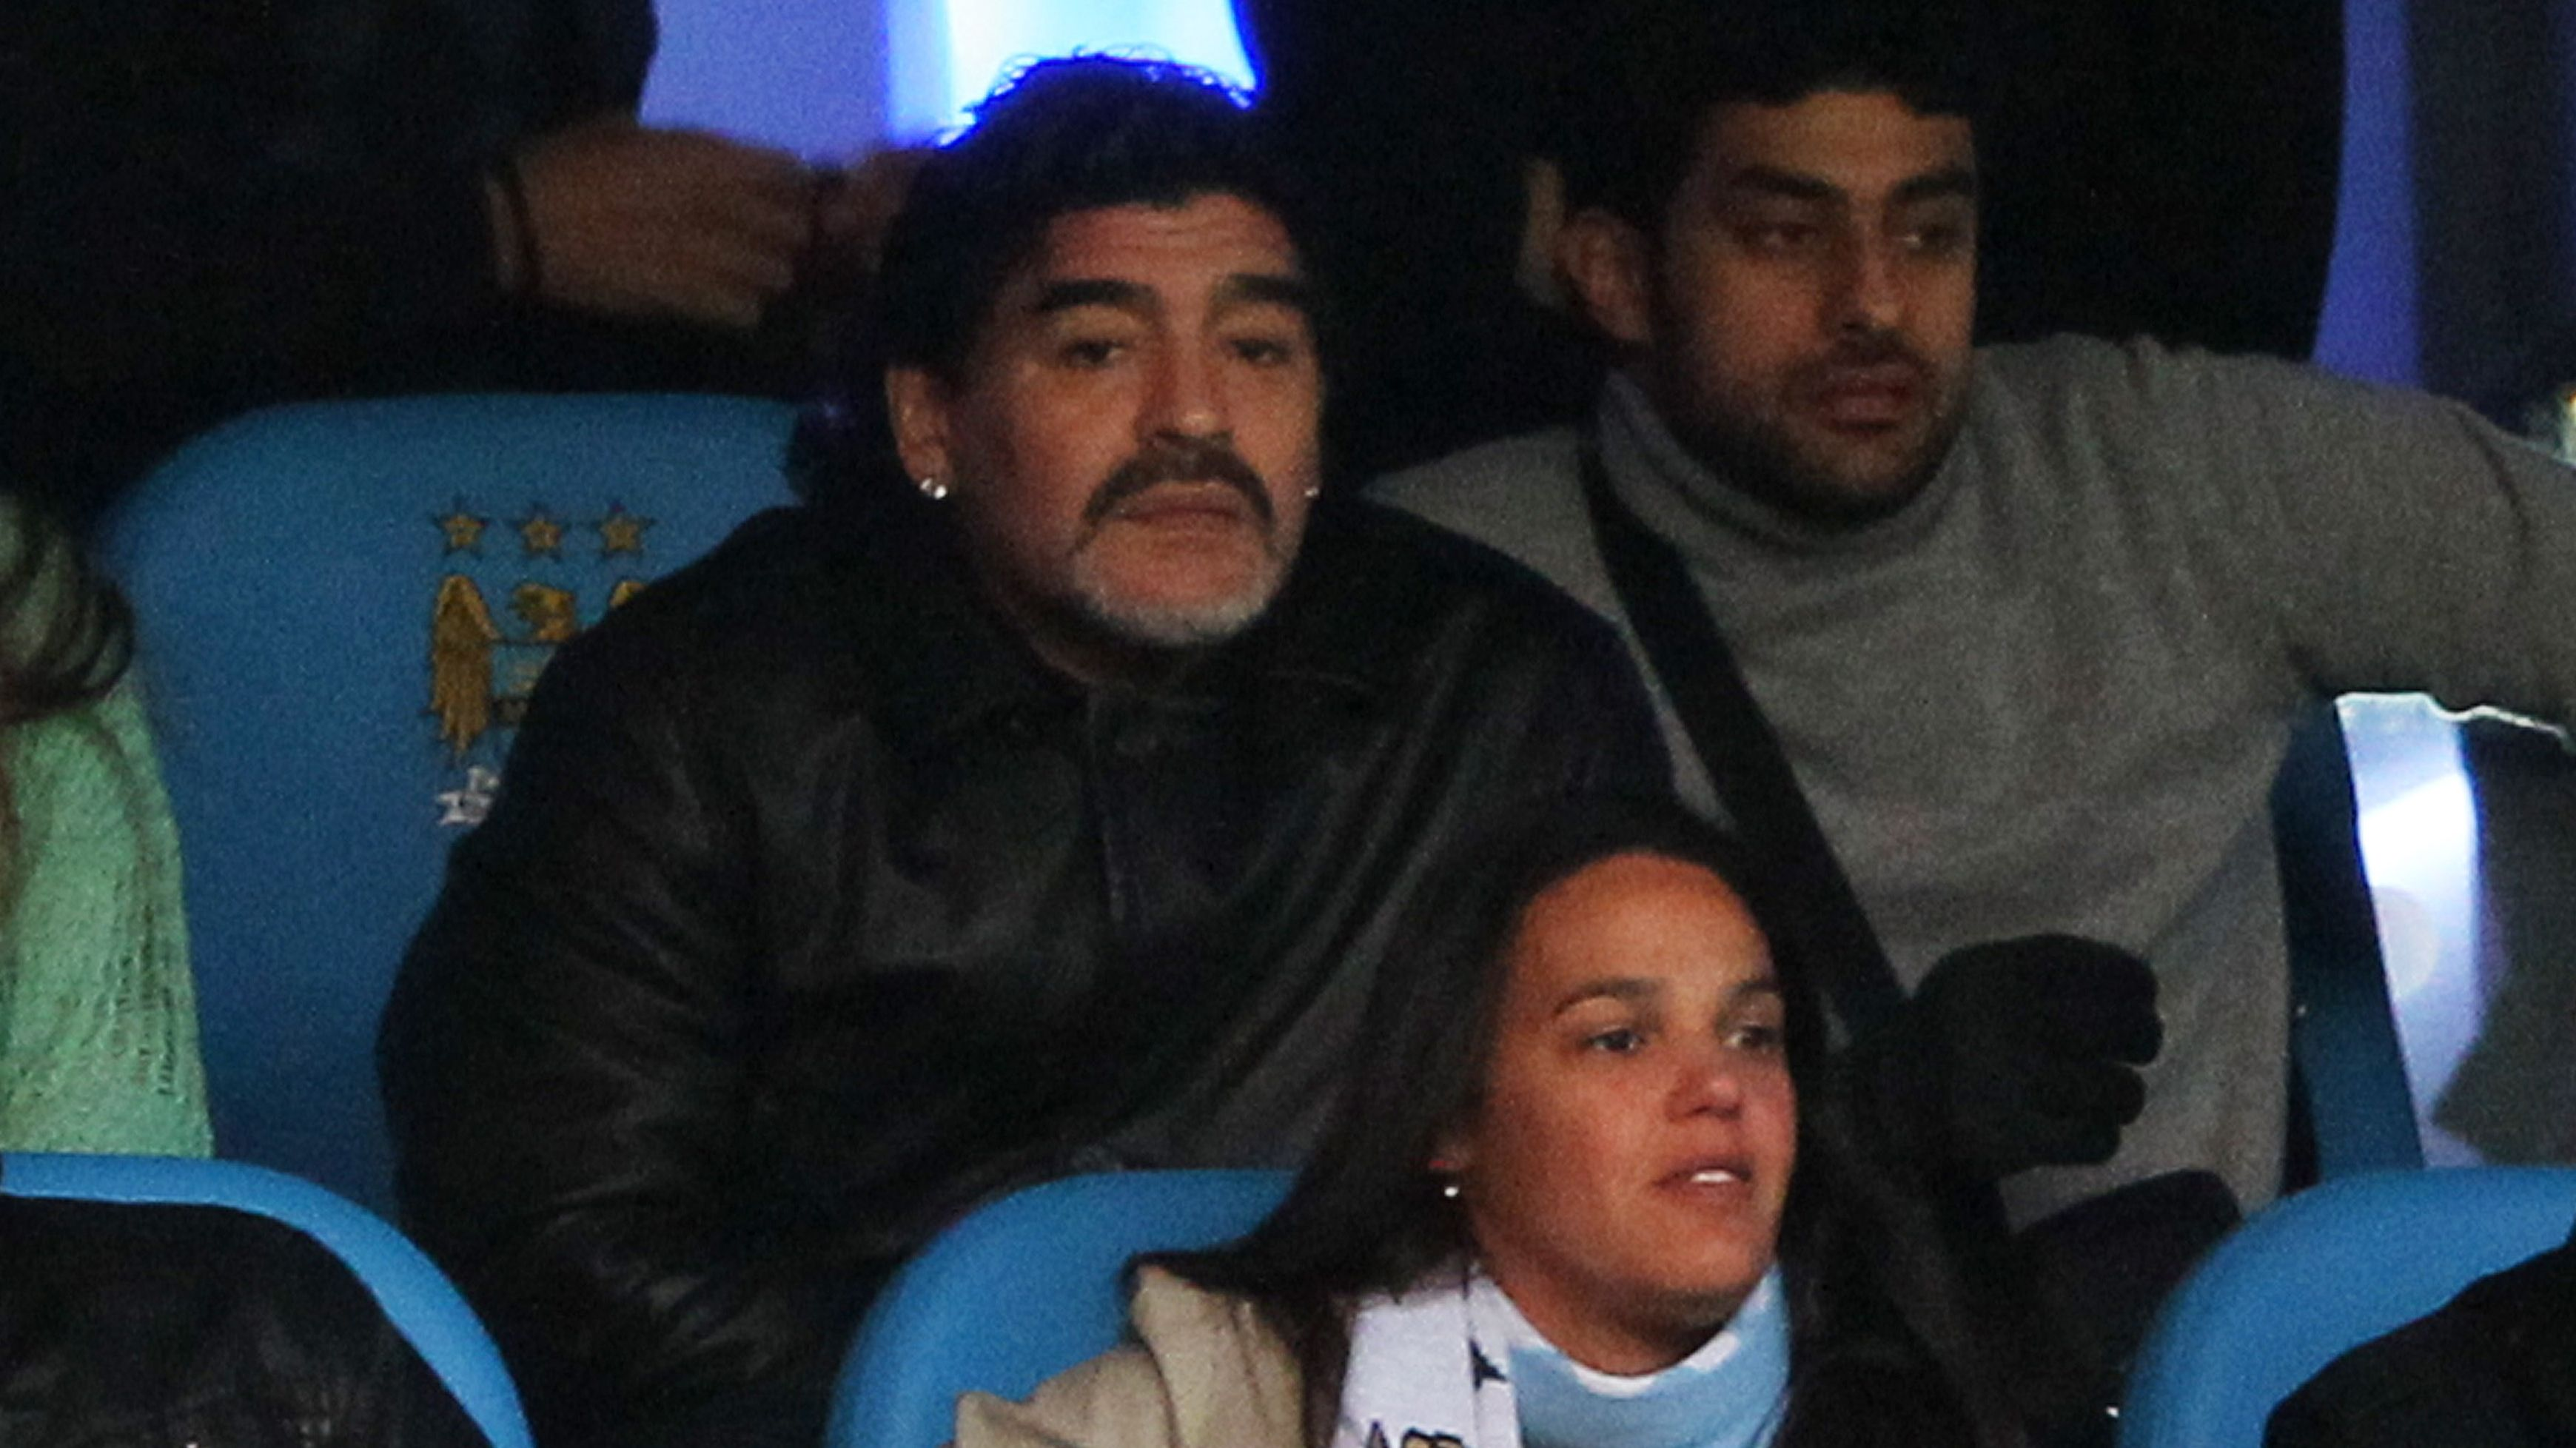 En el estadio del Manchester City